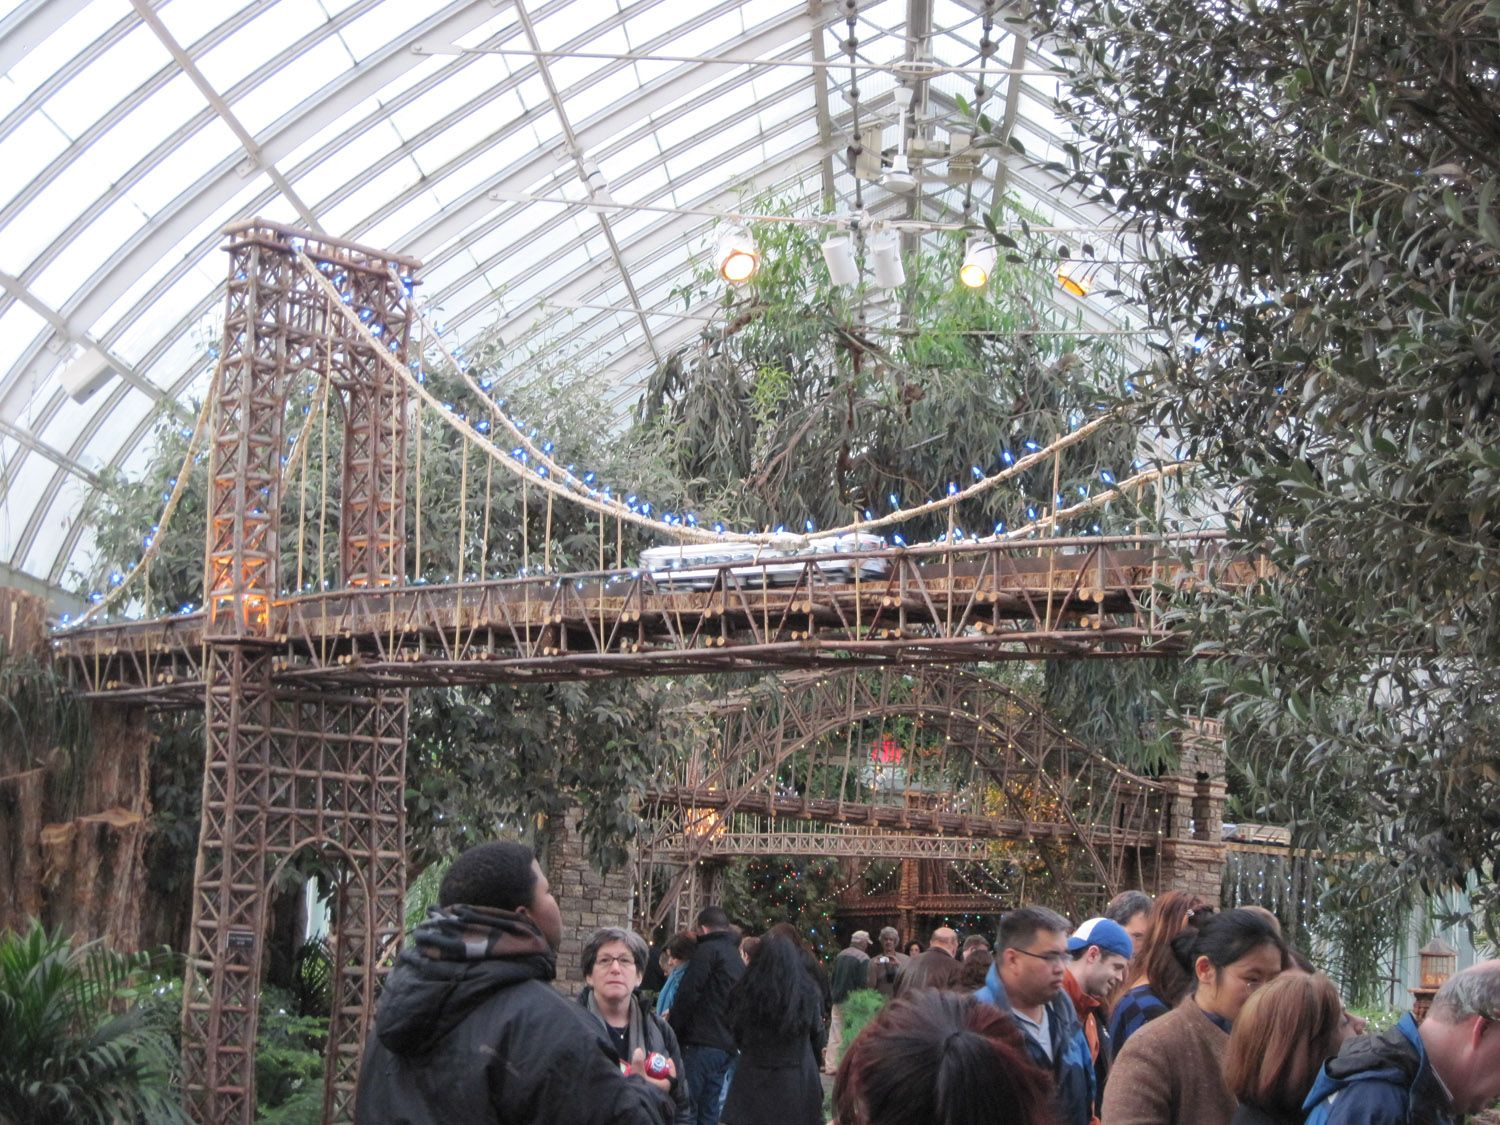 Holiday Train Show New York Botanical Gardens | Holiday Train Show |  Pinterest